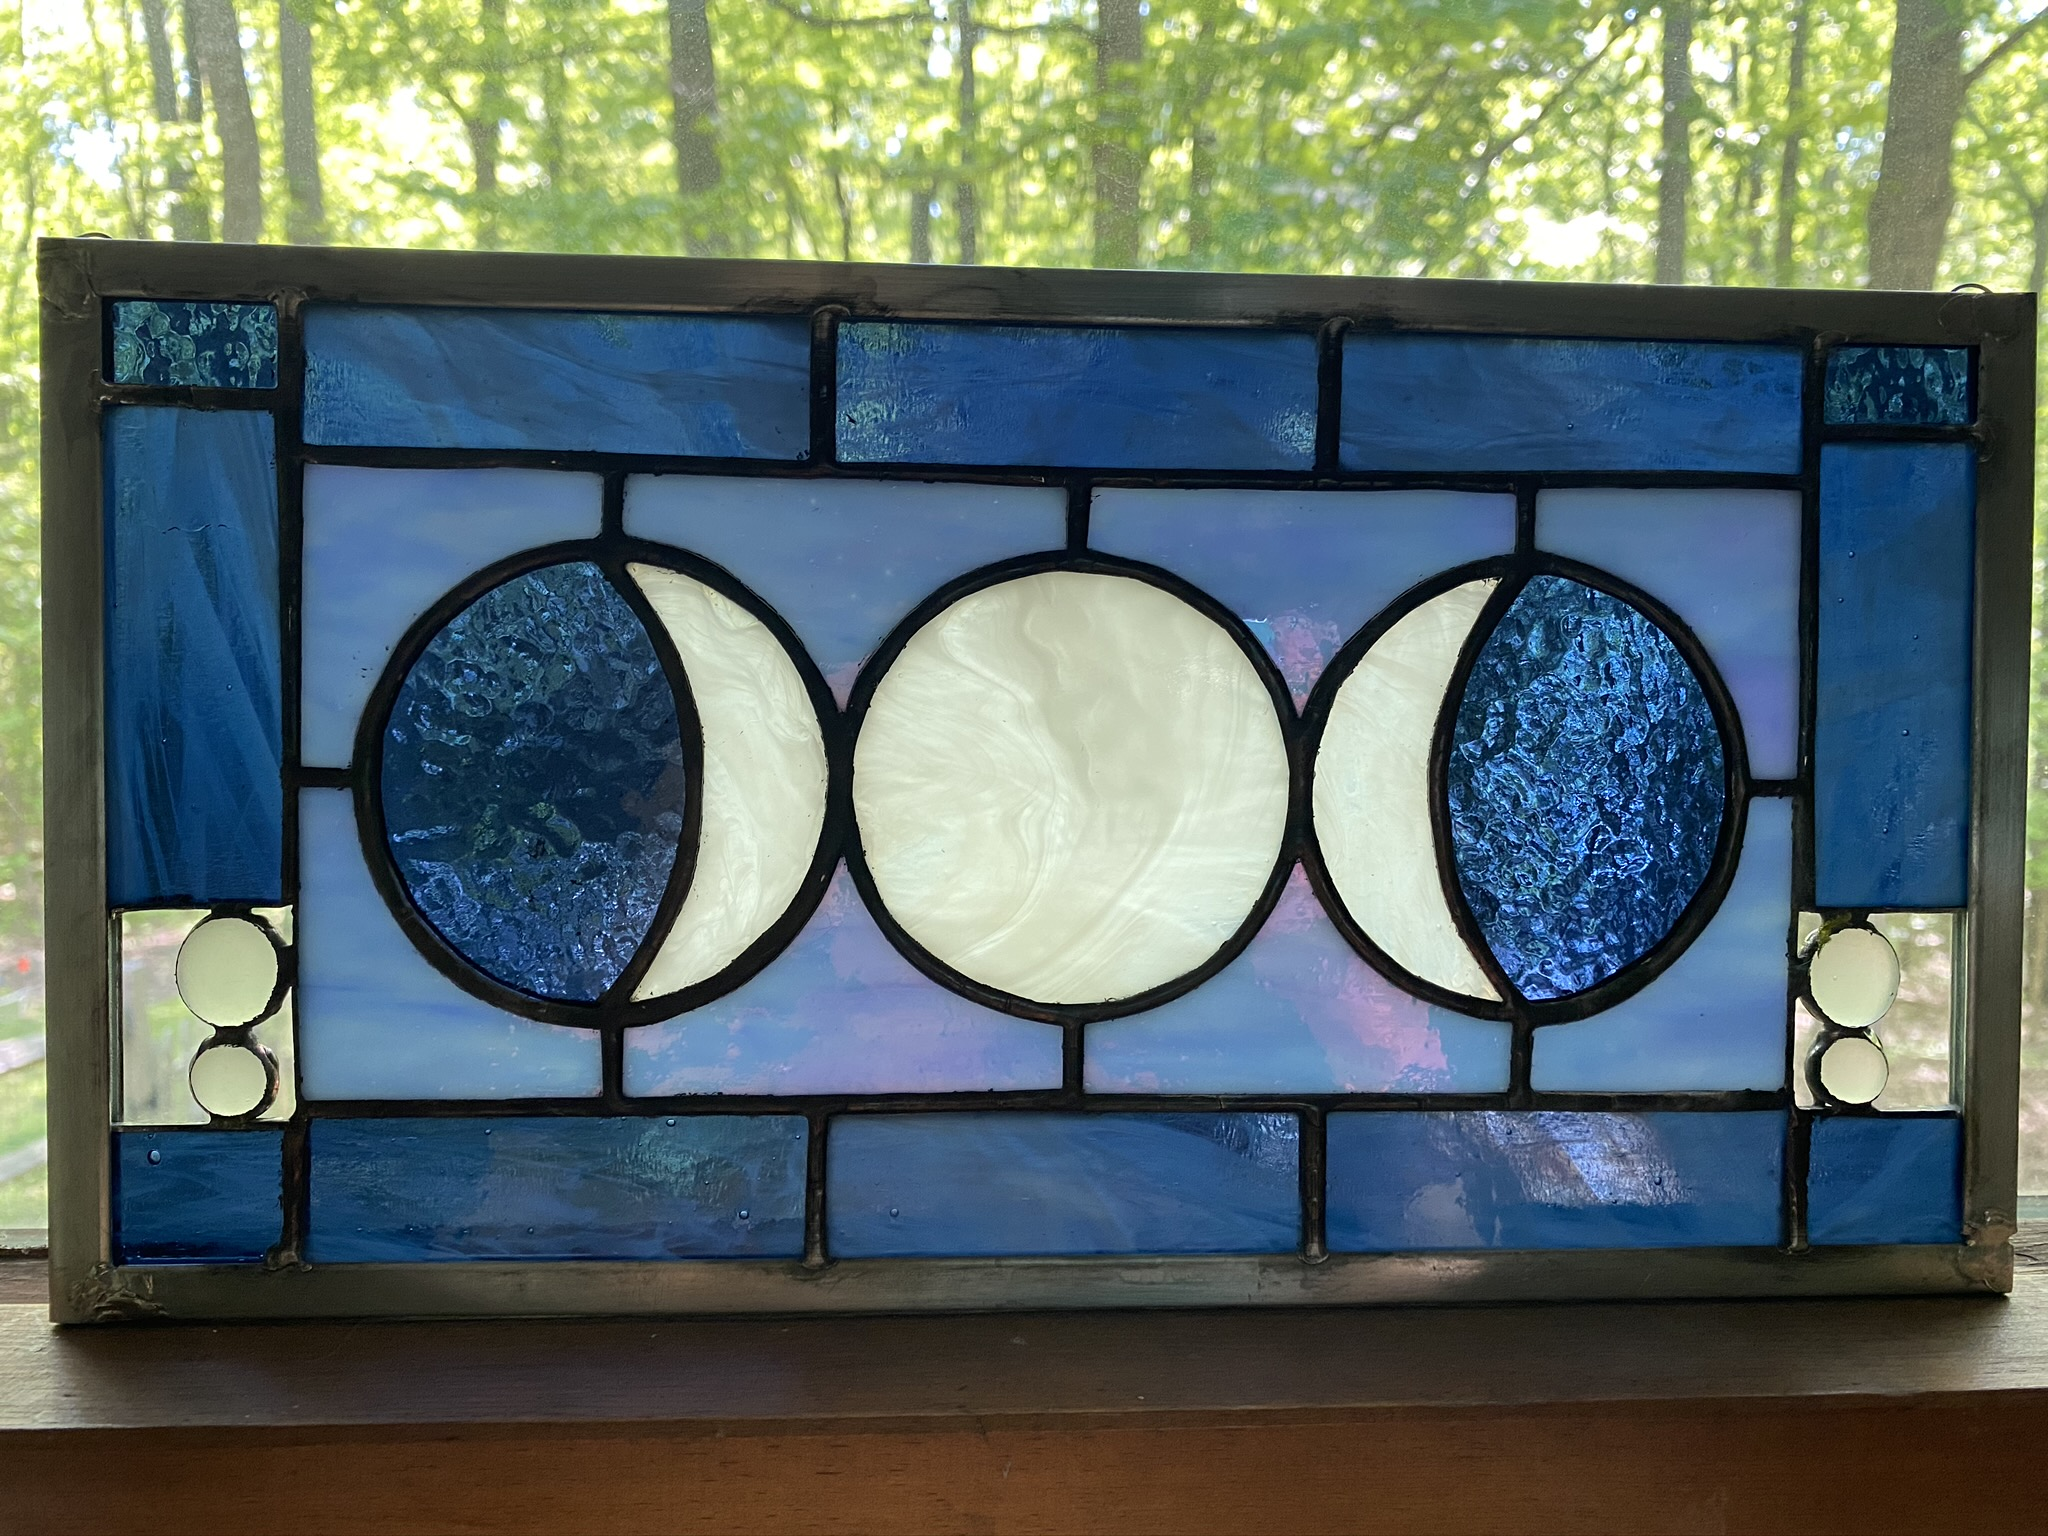 Stained glass moon phases panel